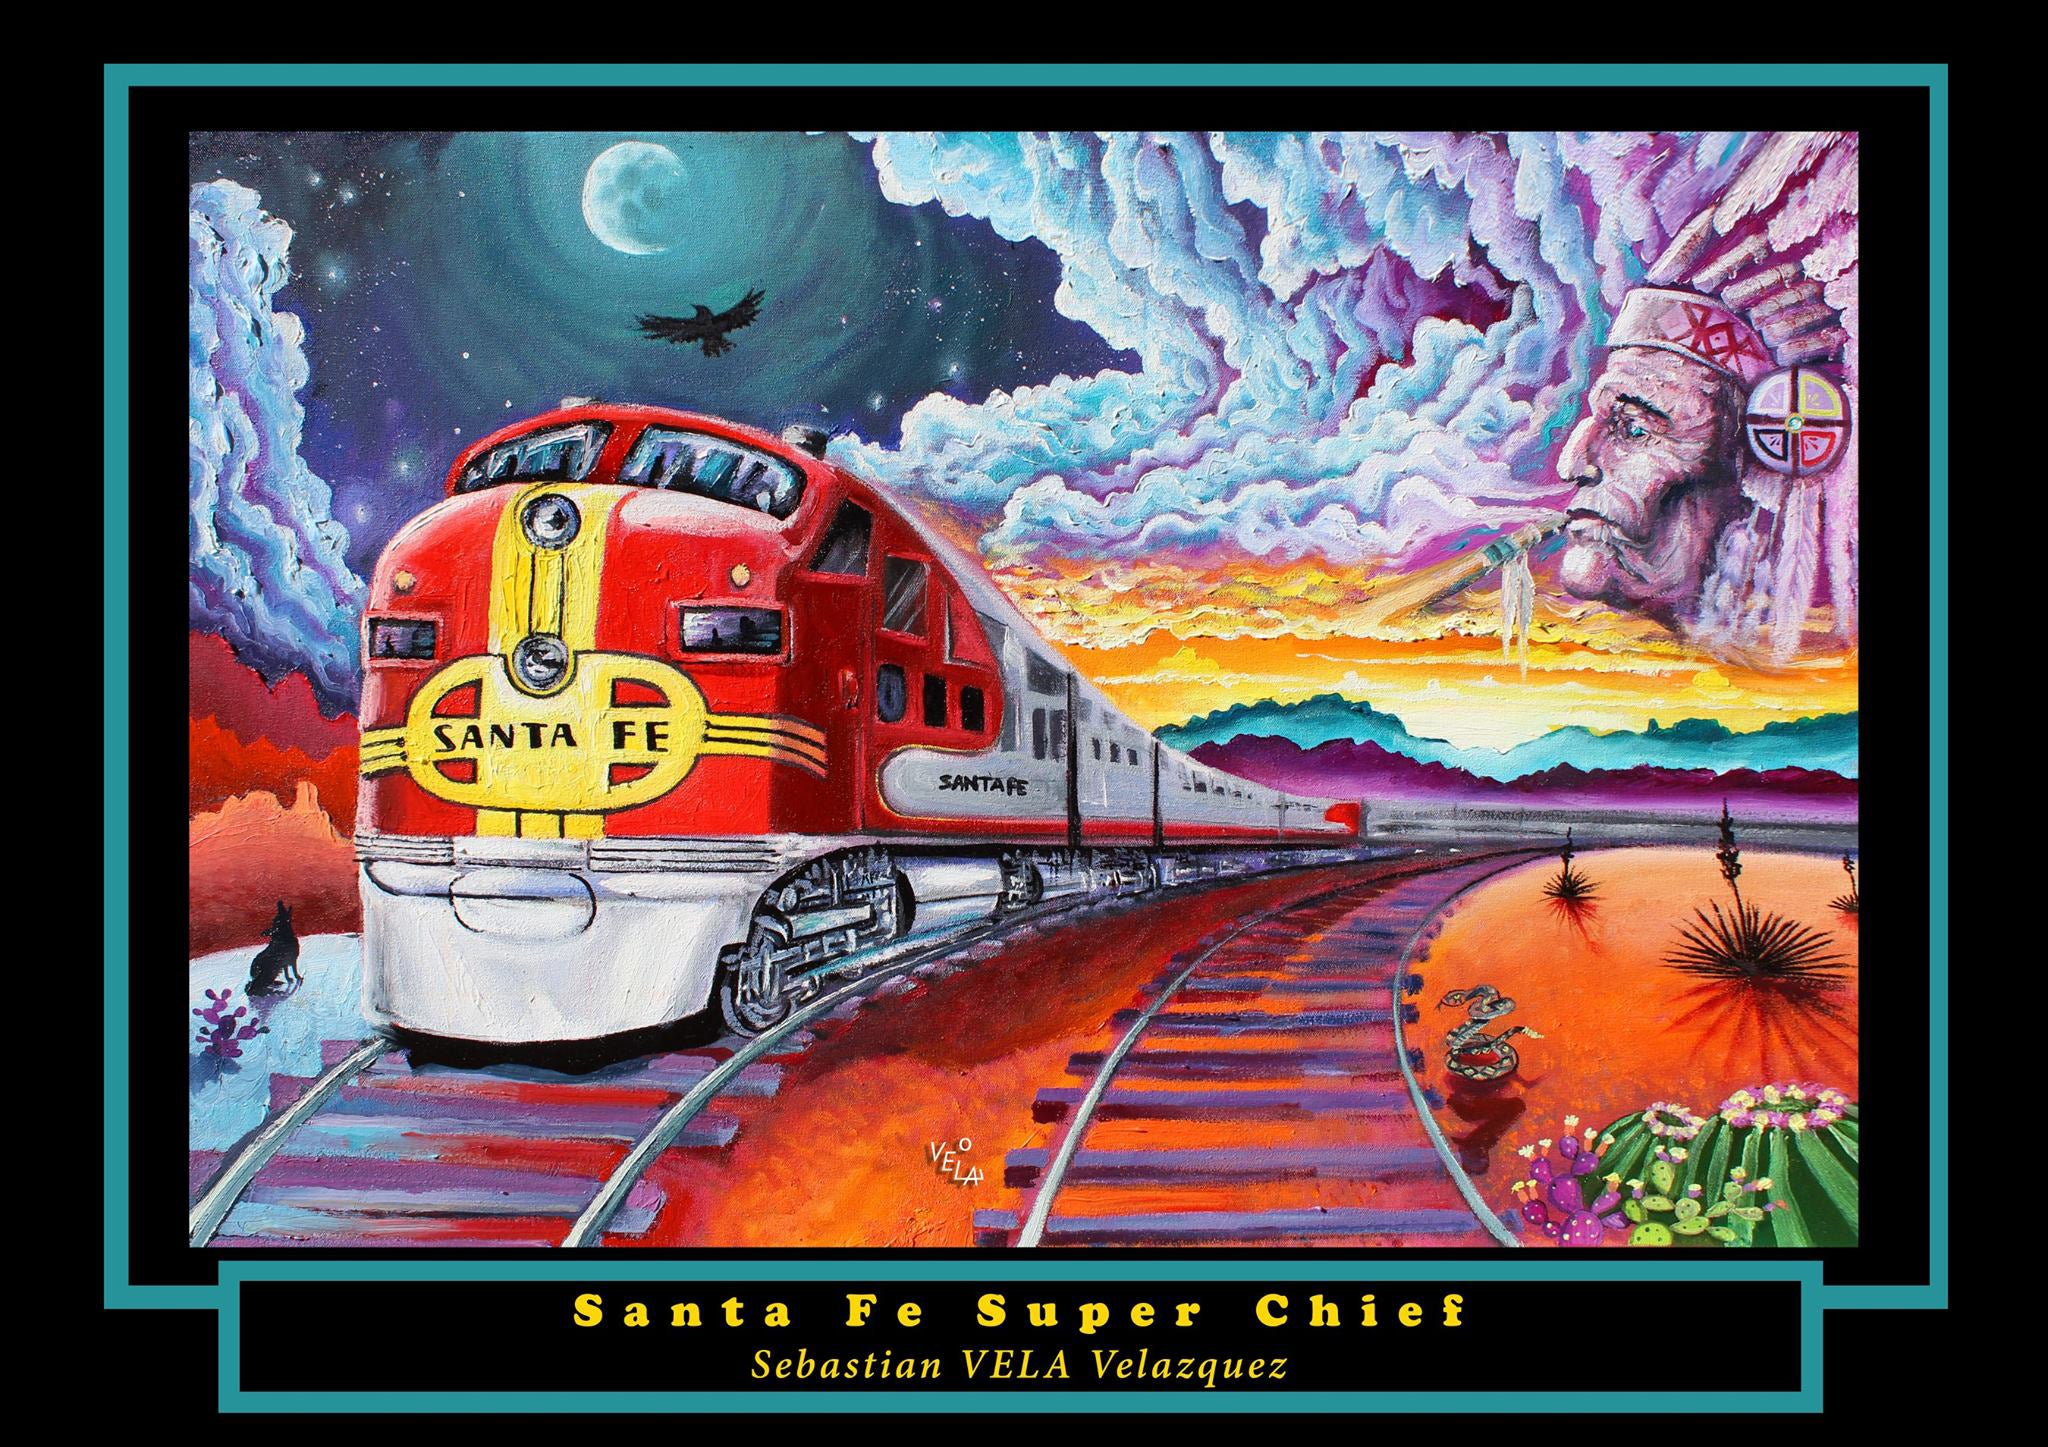 Santa Fe Super Chief Poster Print